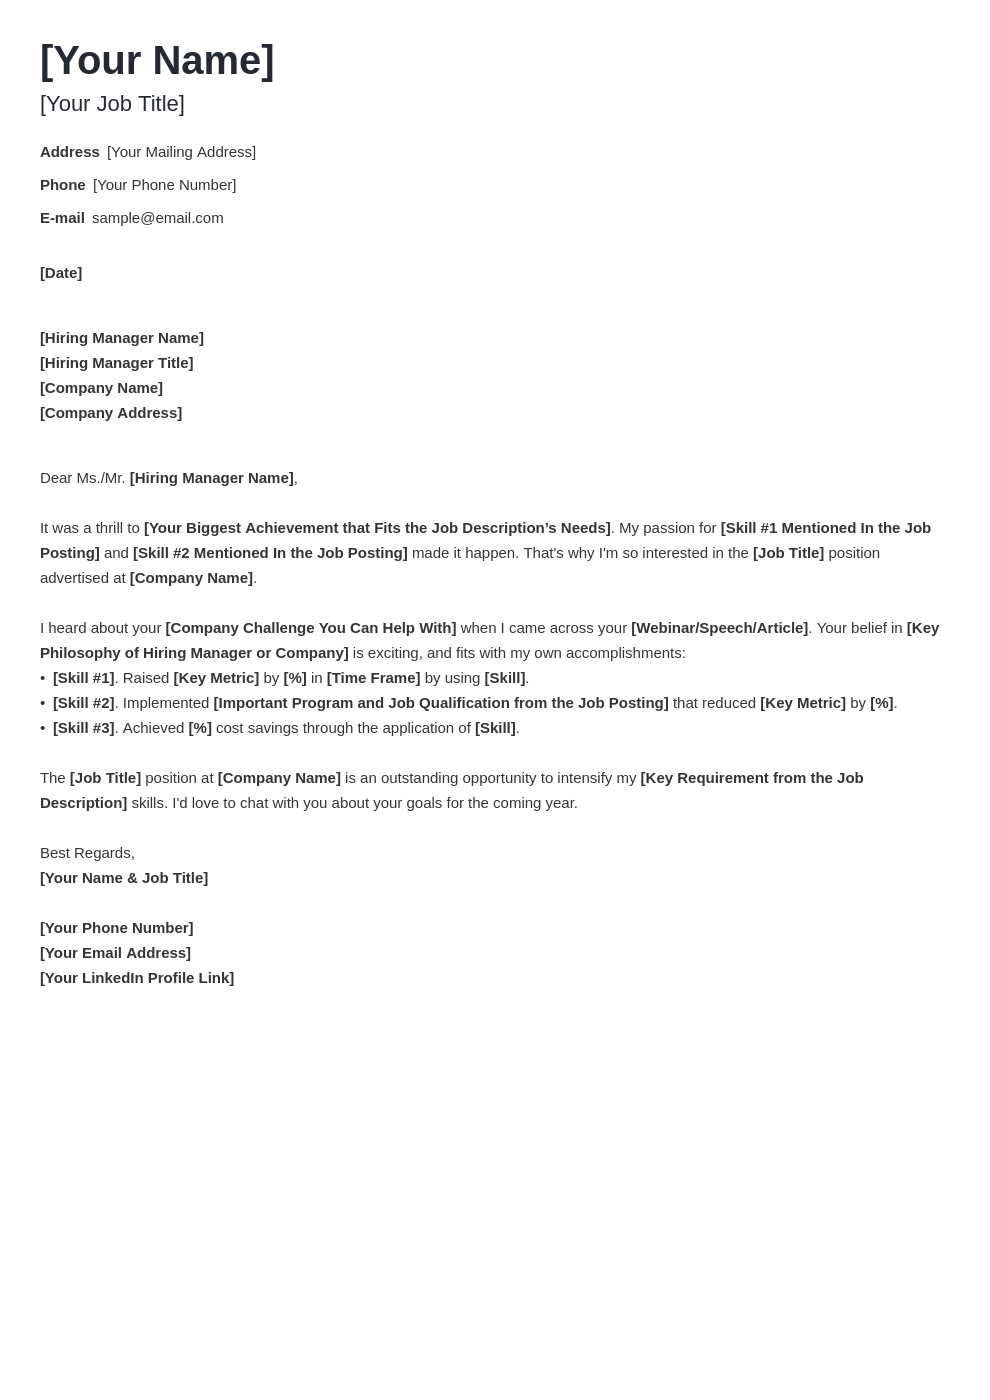 cover letter generic template minimo uk